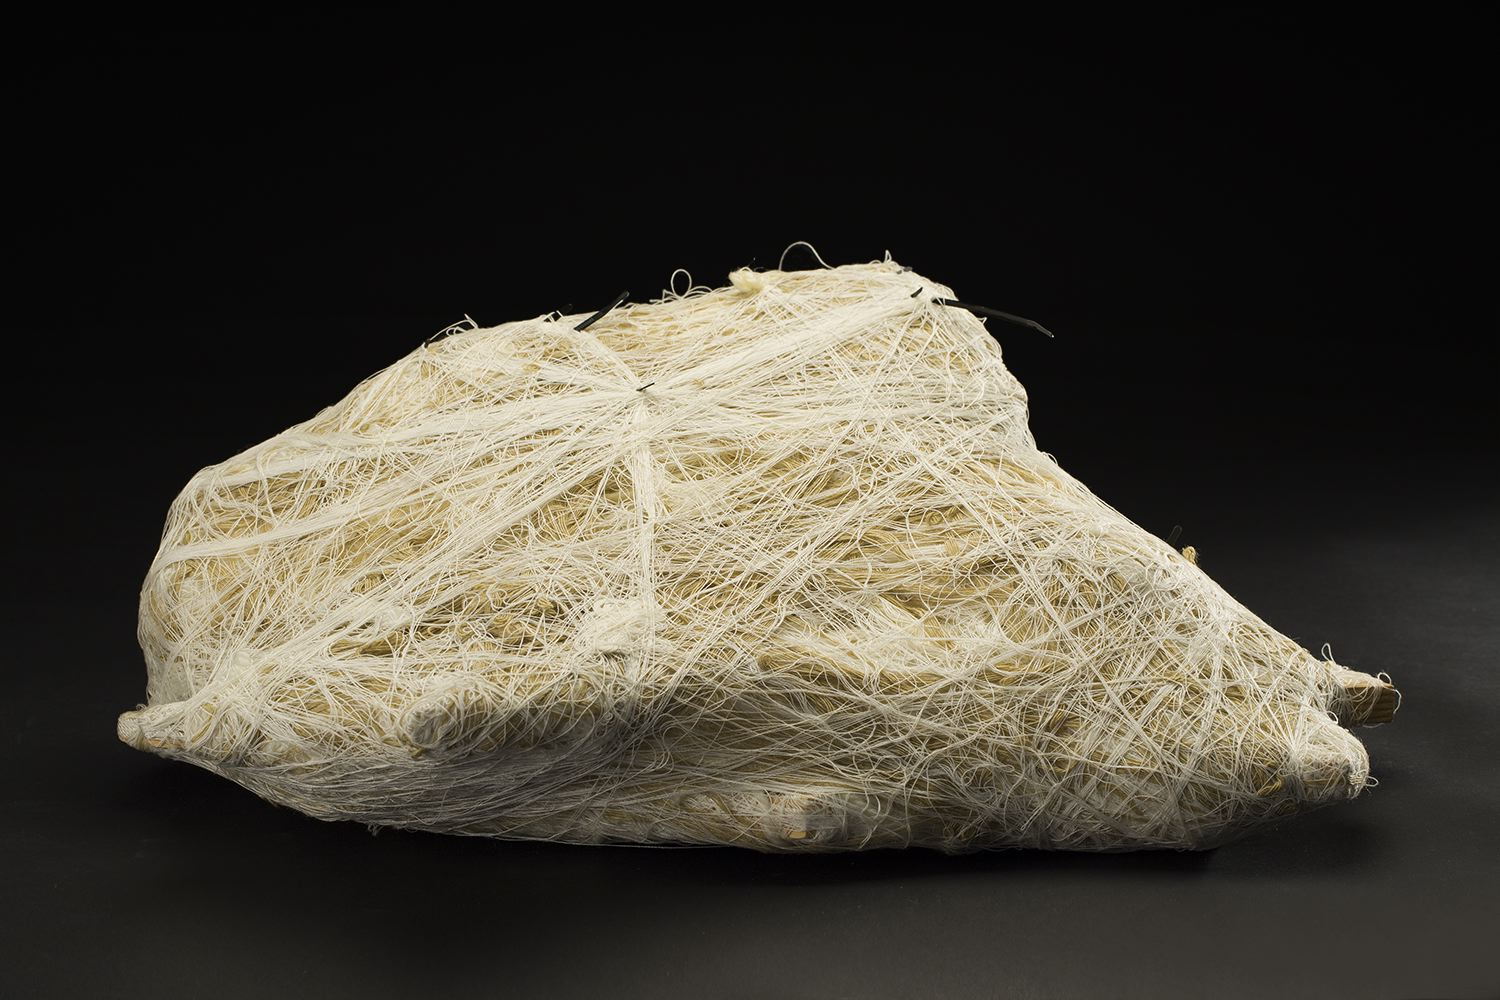 Tony Pedemonte    Untitled  , 2012 Fiber and wood 9 x 24 x 17 inches 22.9 x 61 x 43.2 cm TPed 16